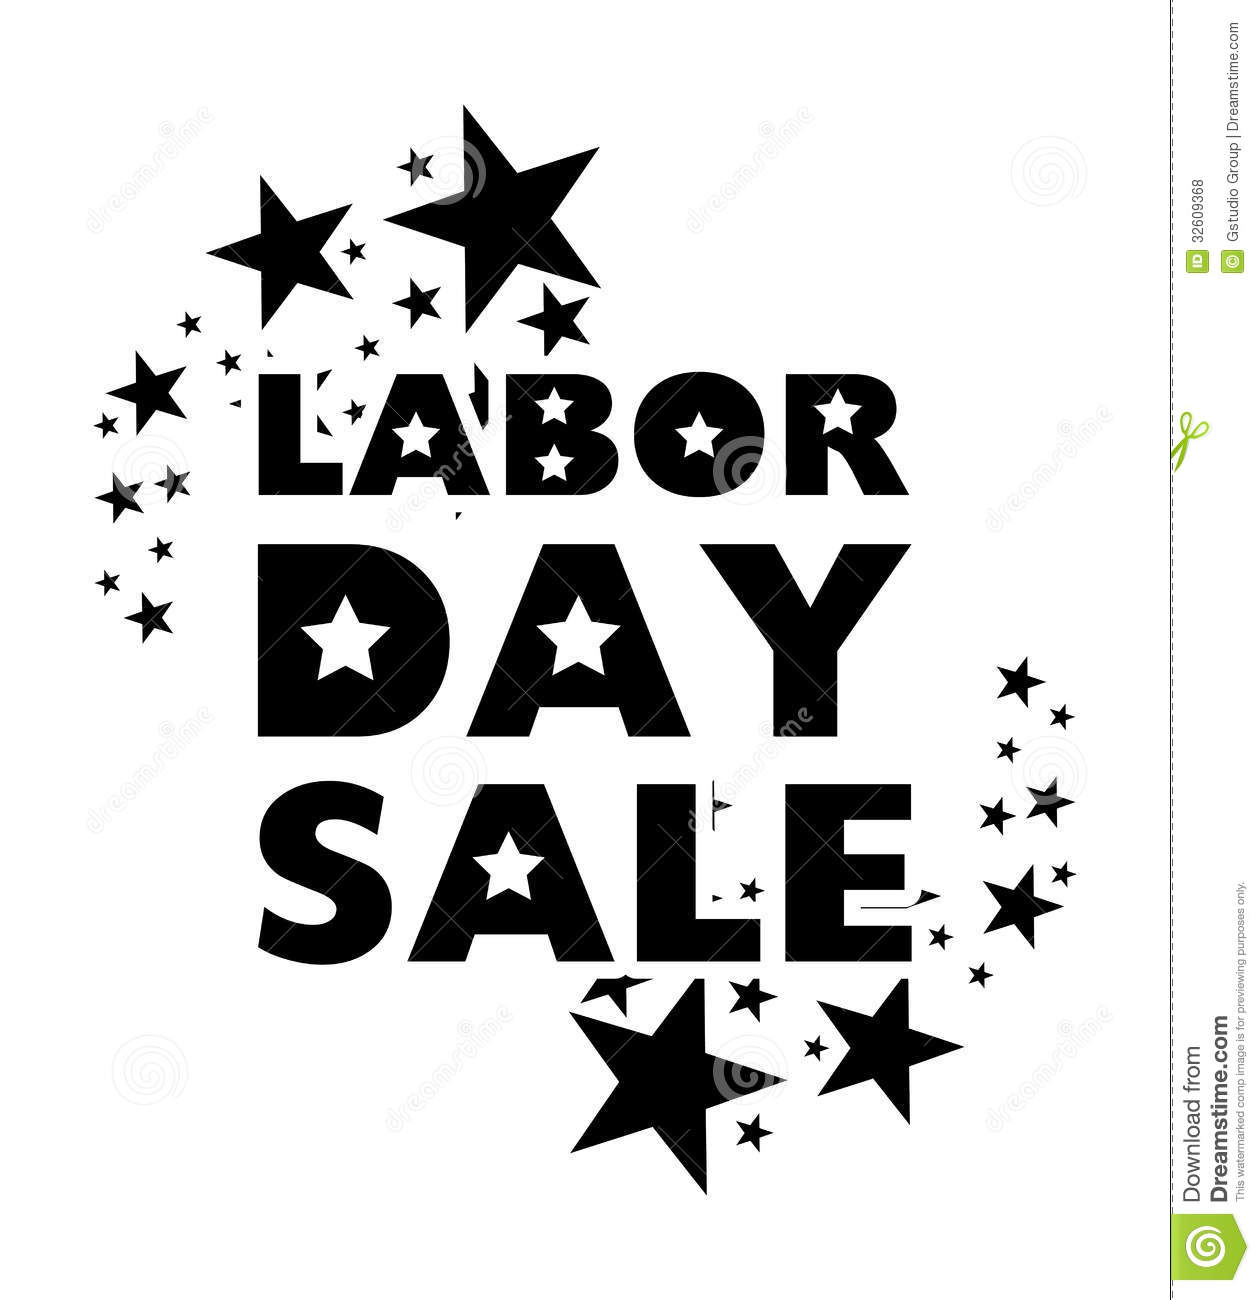 Labor Day Sale: Labor Day Sale Royalty Free Stock Photos